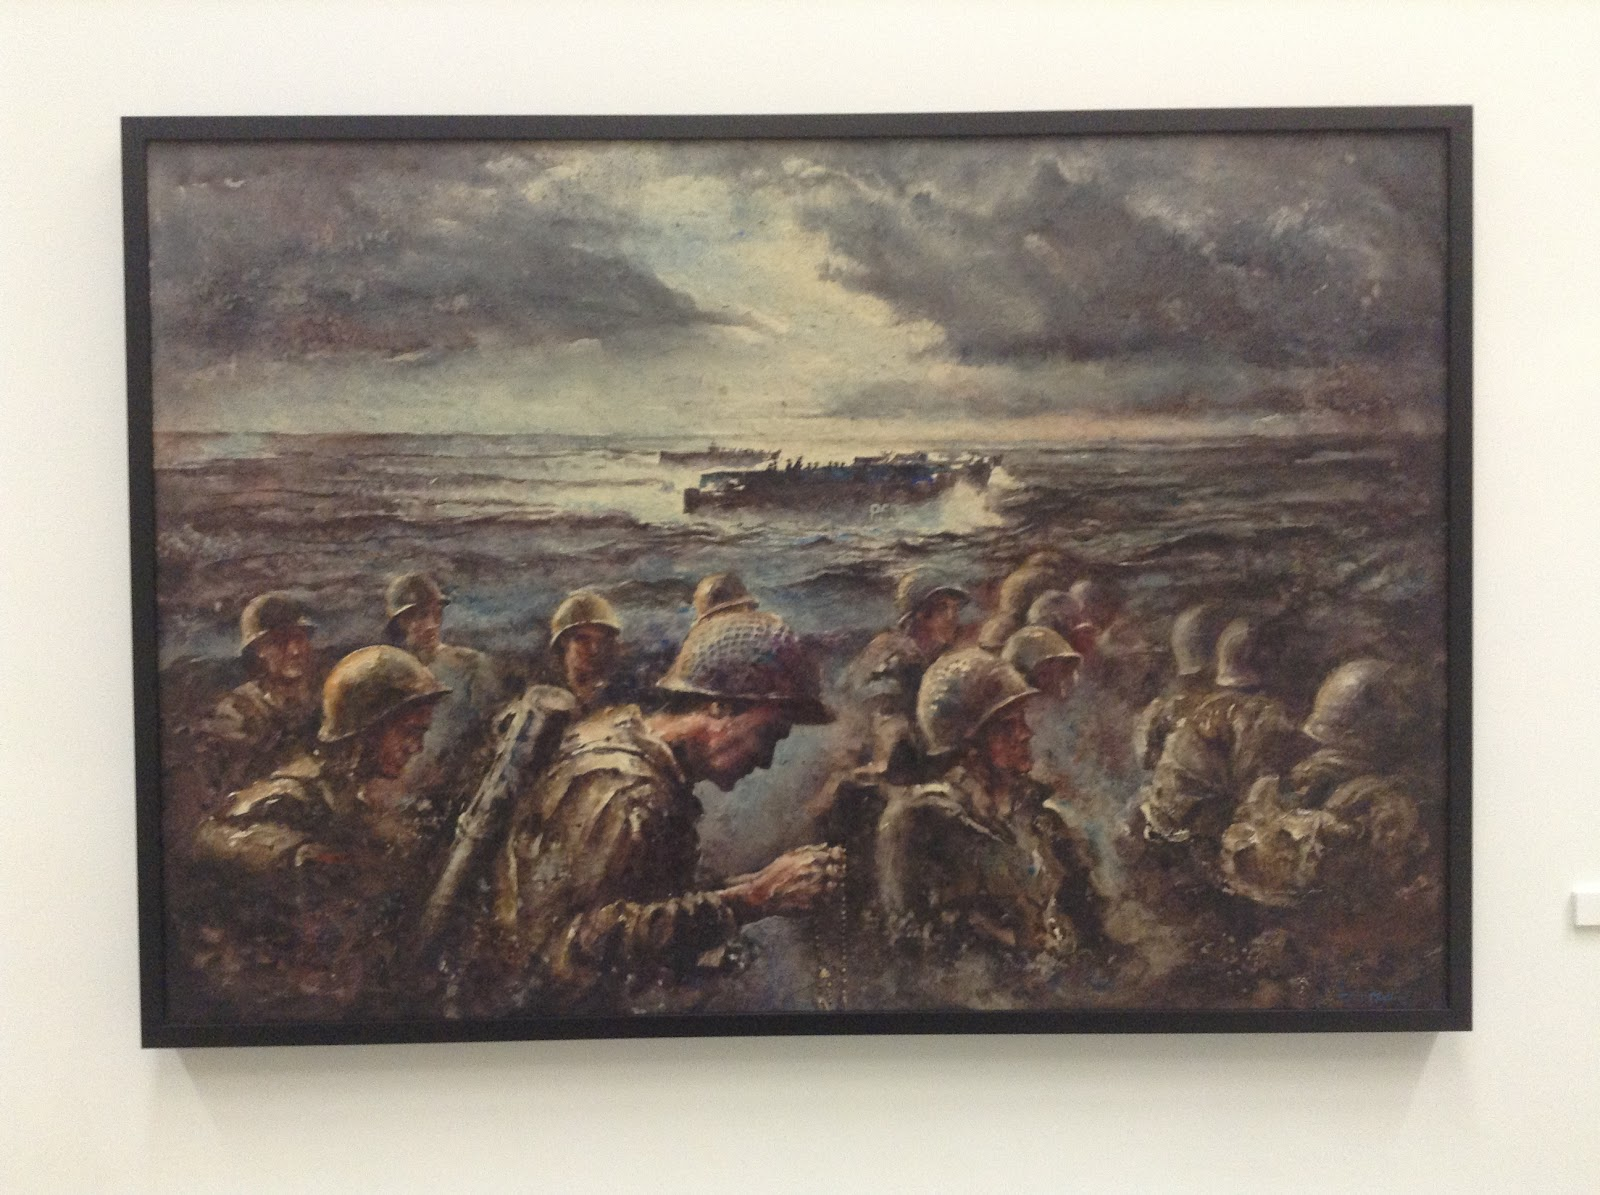 influences of war The start of the 19th century was a time of hostility between france and england, marked by a series of wars throughout this period, england feared a french invasion led by napoleon ruth mather explores the impact of this fear on literature and on everyday life.